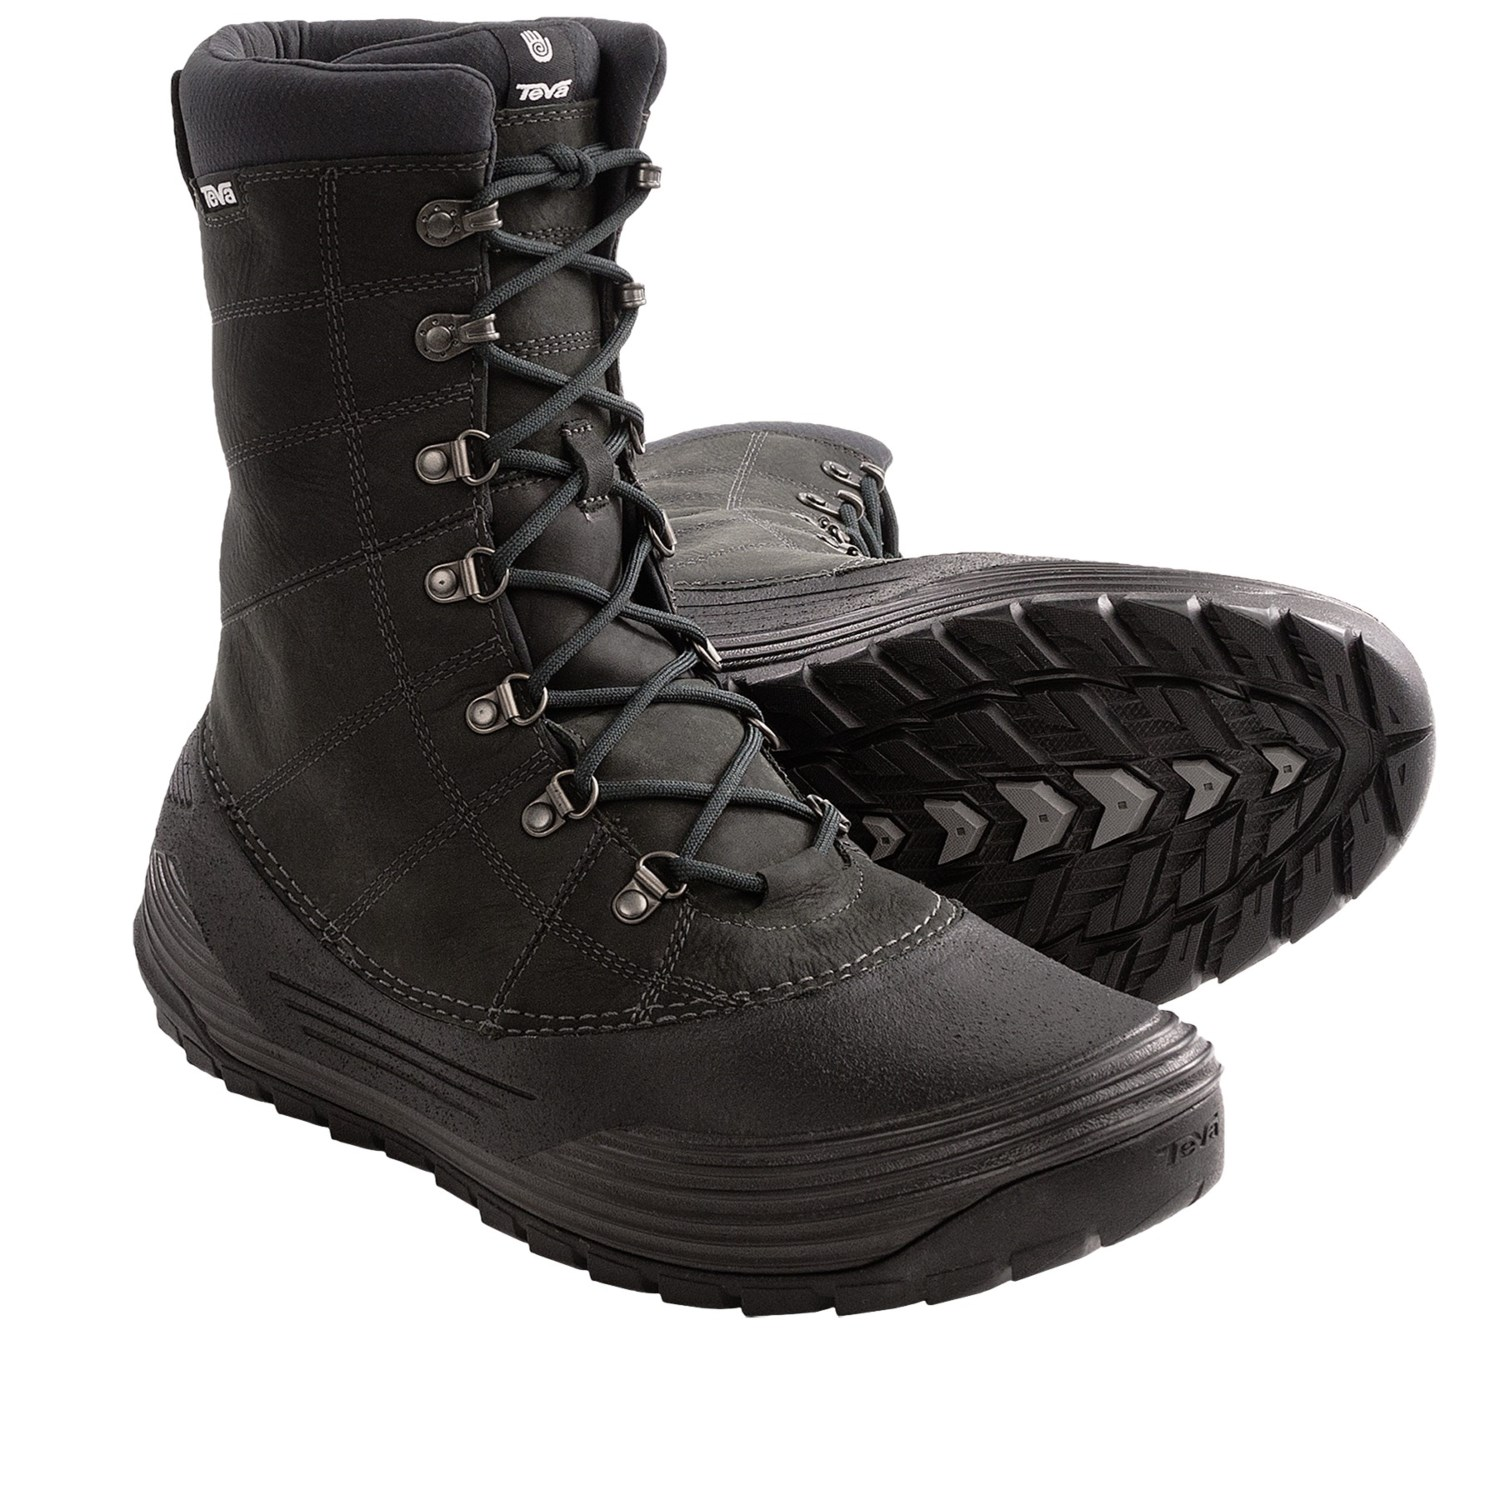 Mens Wide Winter Boots | Santa Barbara Institute for Consciousness ...